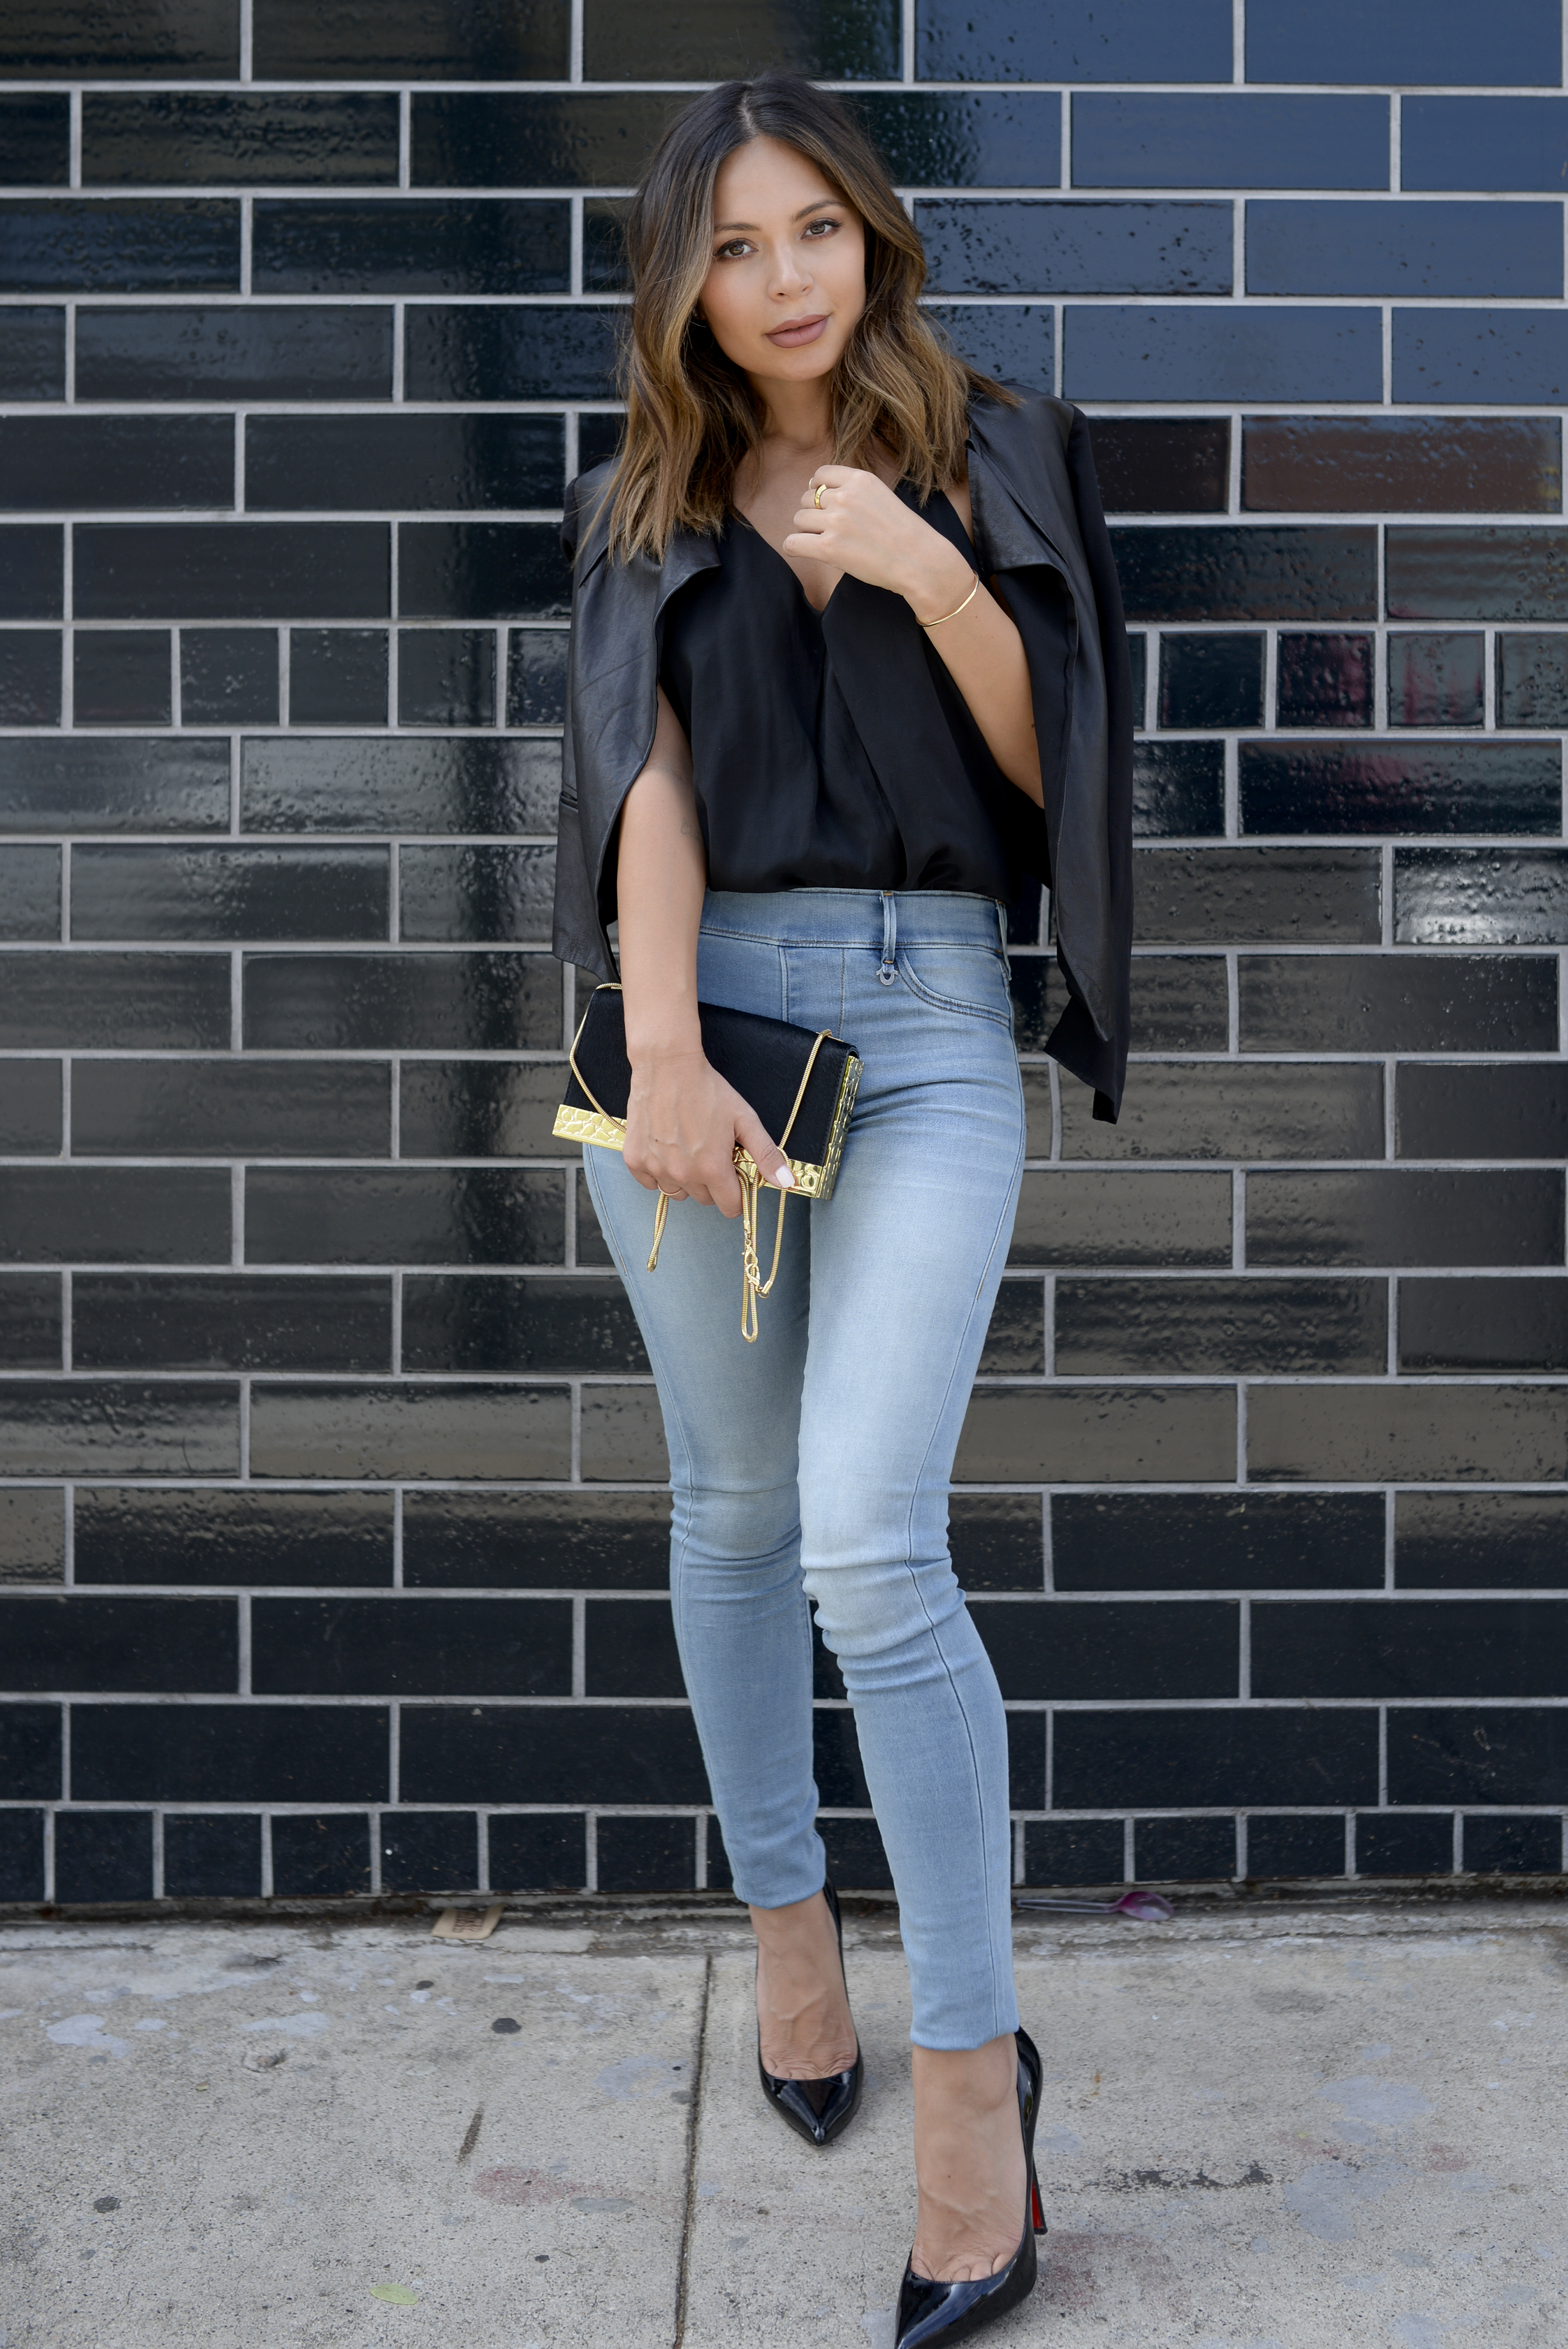 d0740f3a10 If you find yourself trying to create an outfit around denim of any color  and you can t quite get the chic factor going